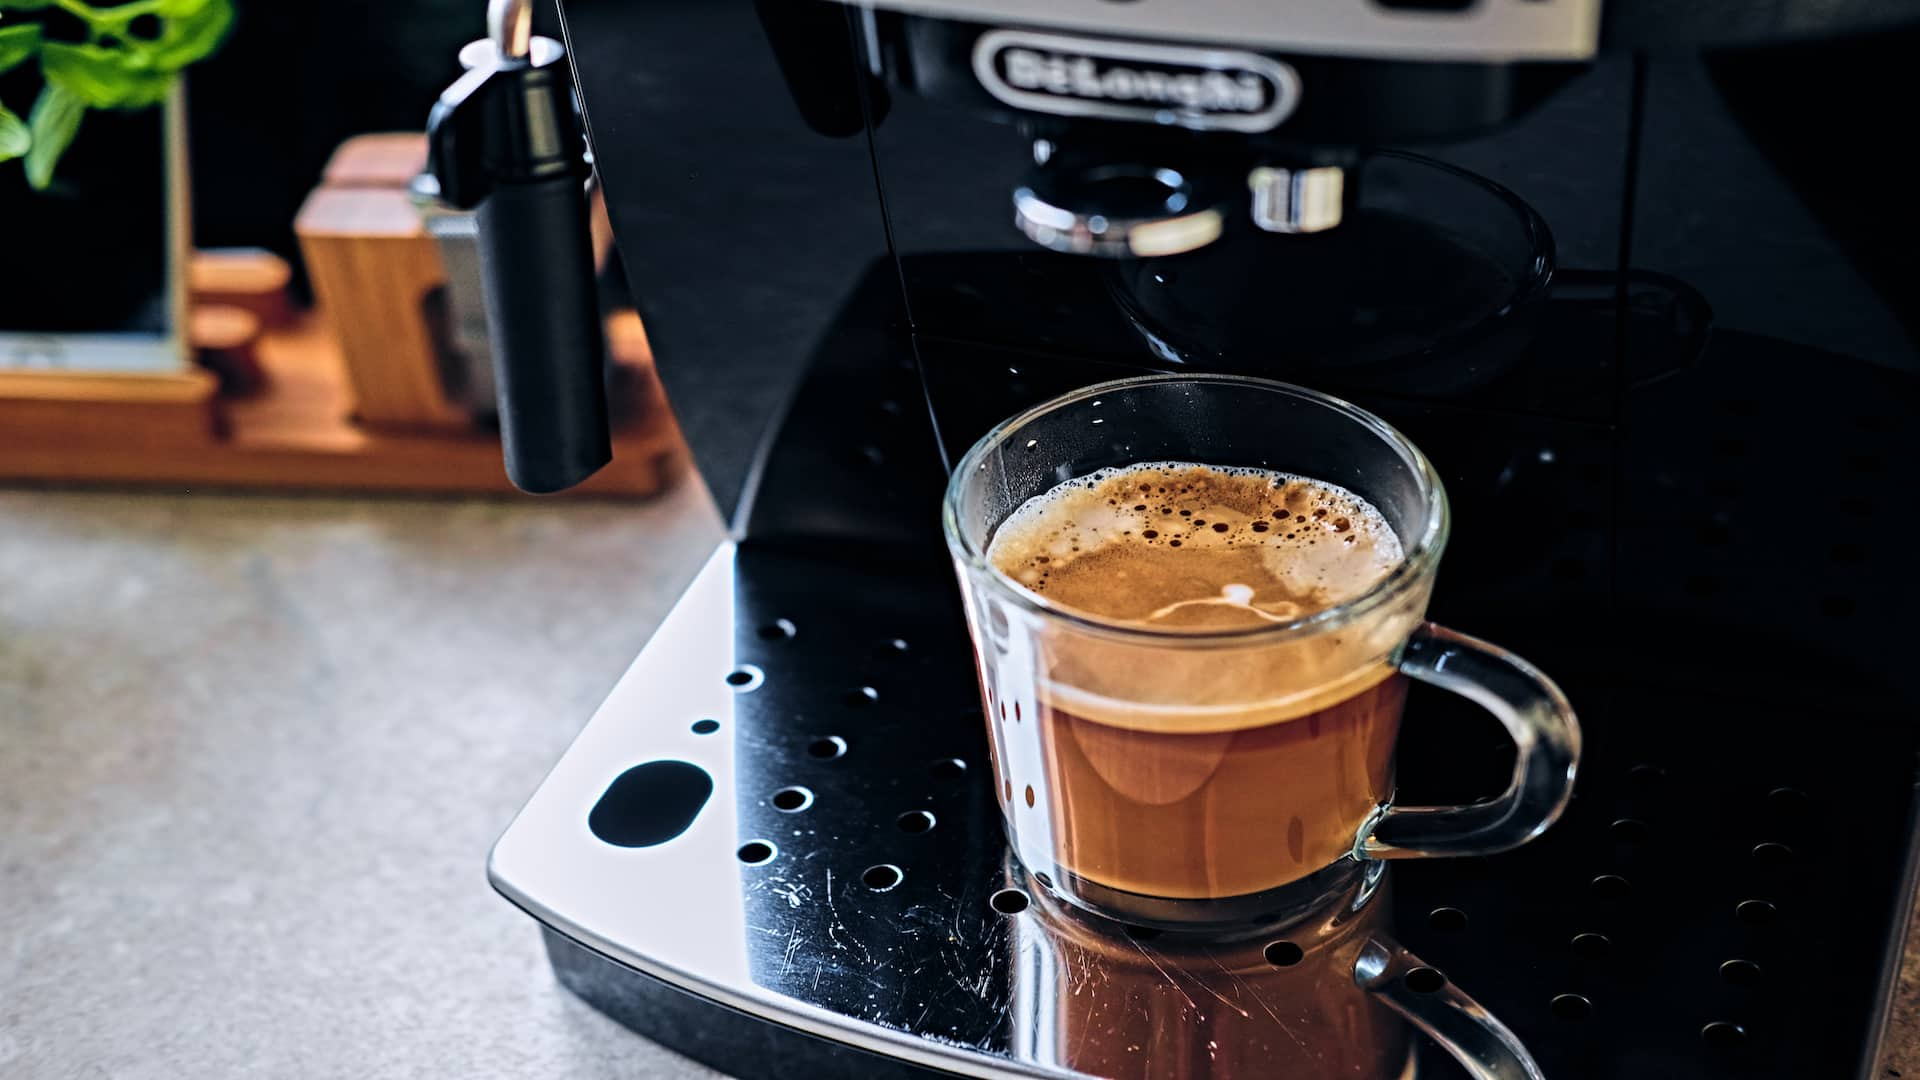 Image shows coffee machine with full coffee cup.